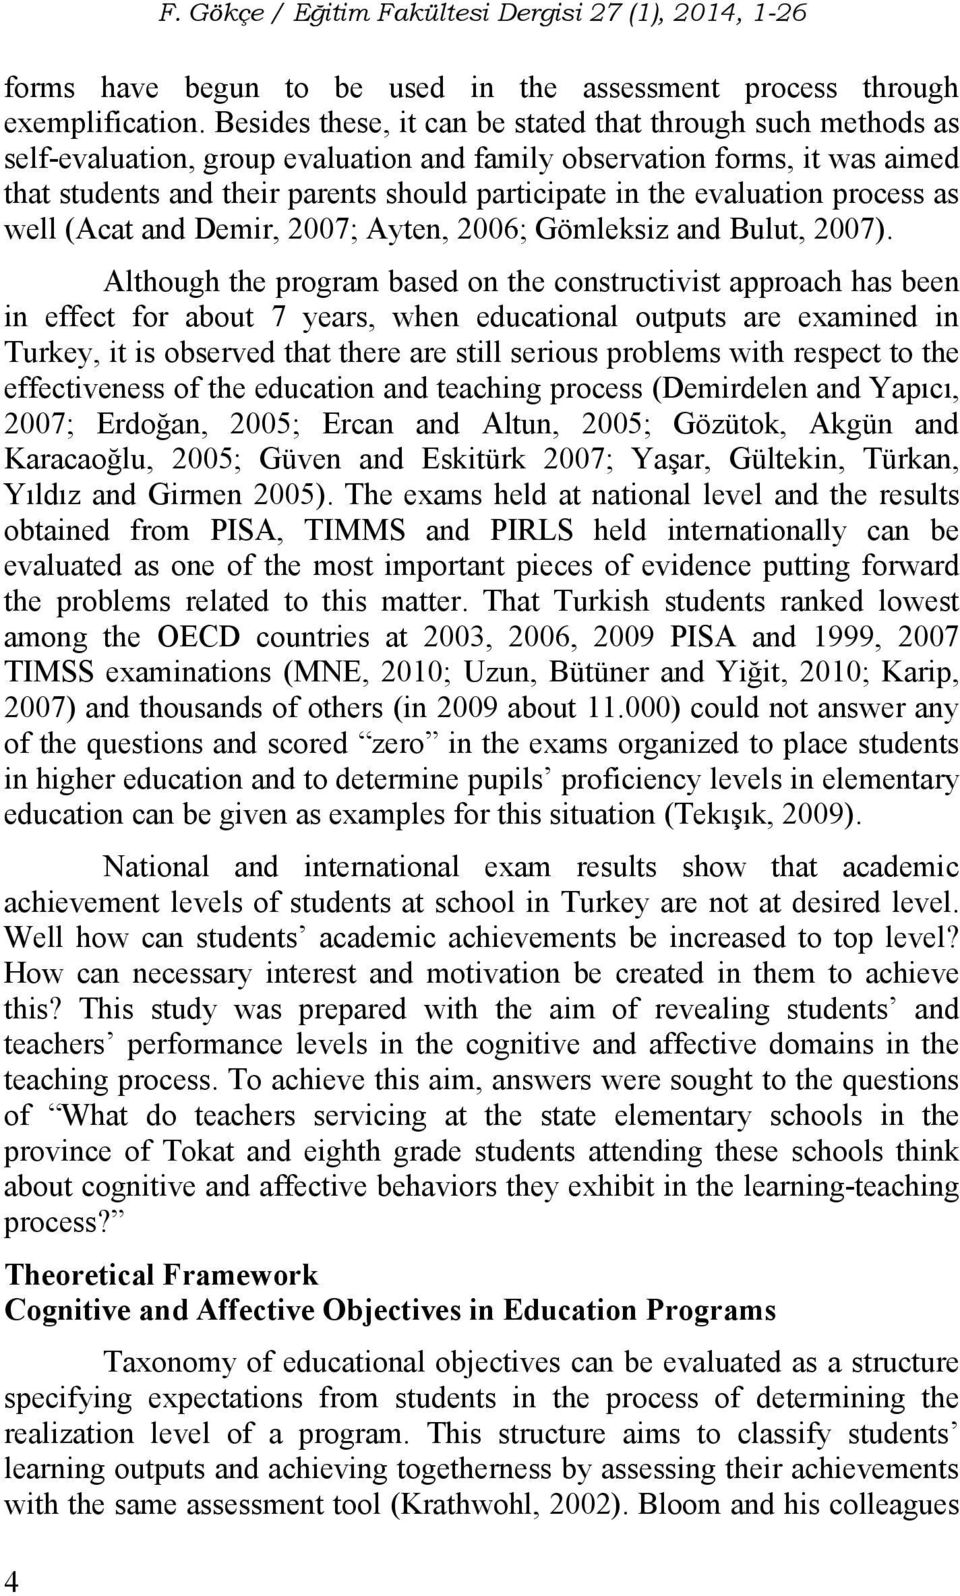 evaluation process as well (Acat and Demir, 2007; Ayten, 2006; Gömleksiz and Bulut, 2007).